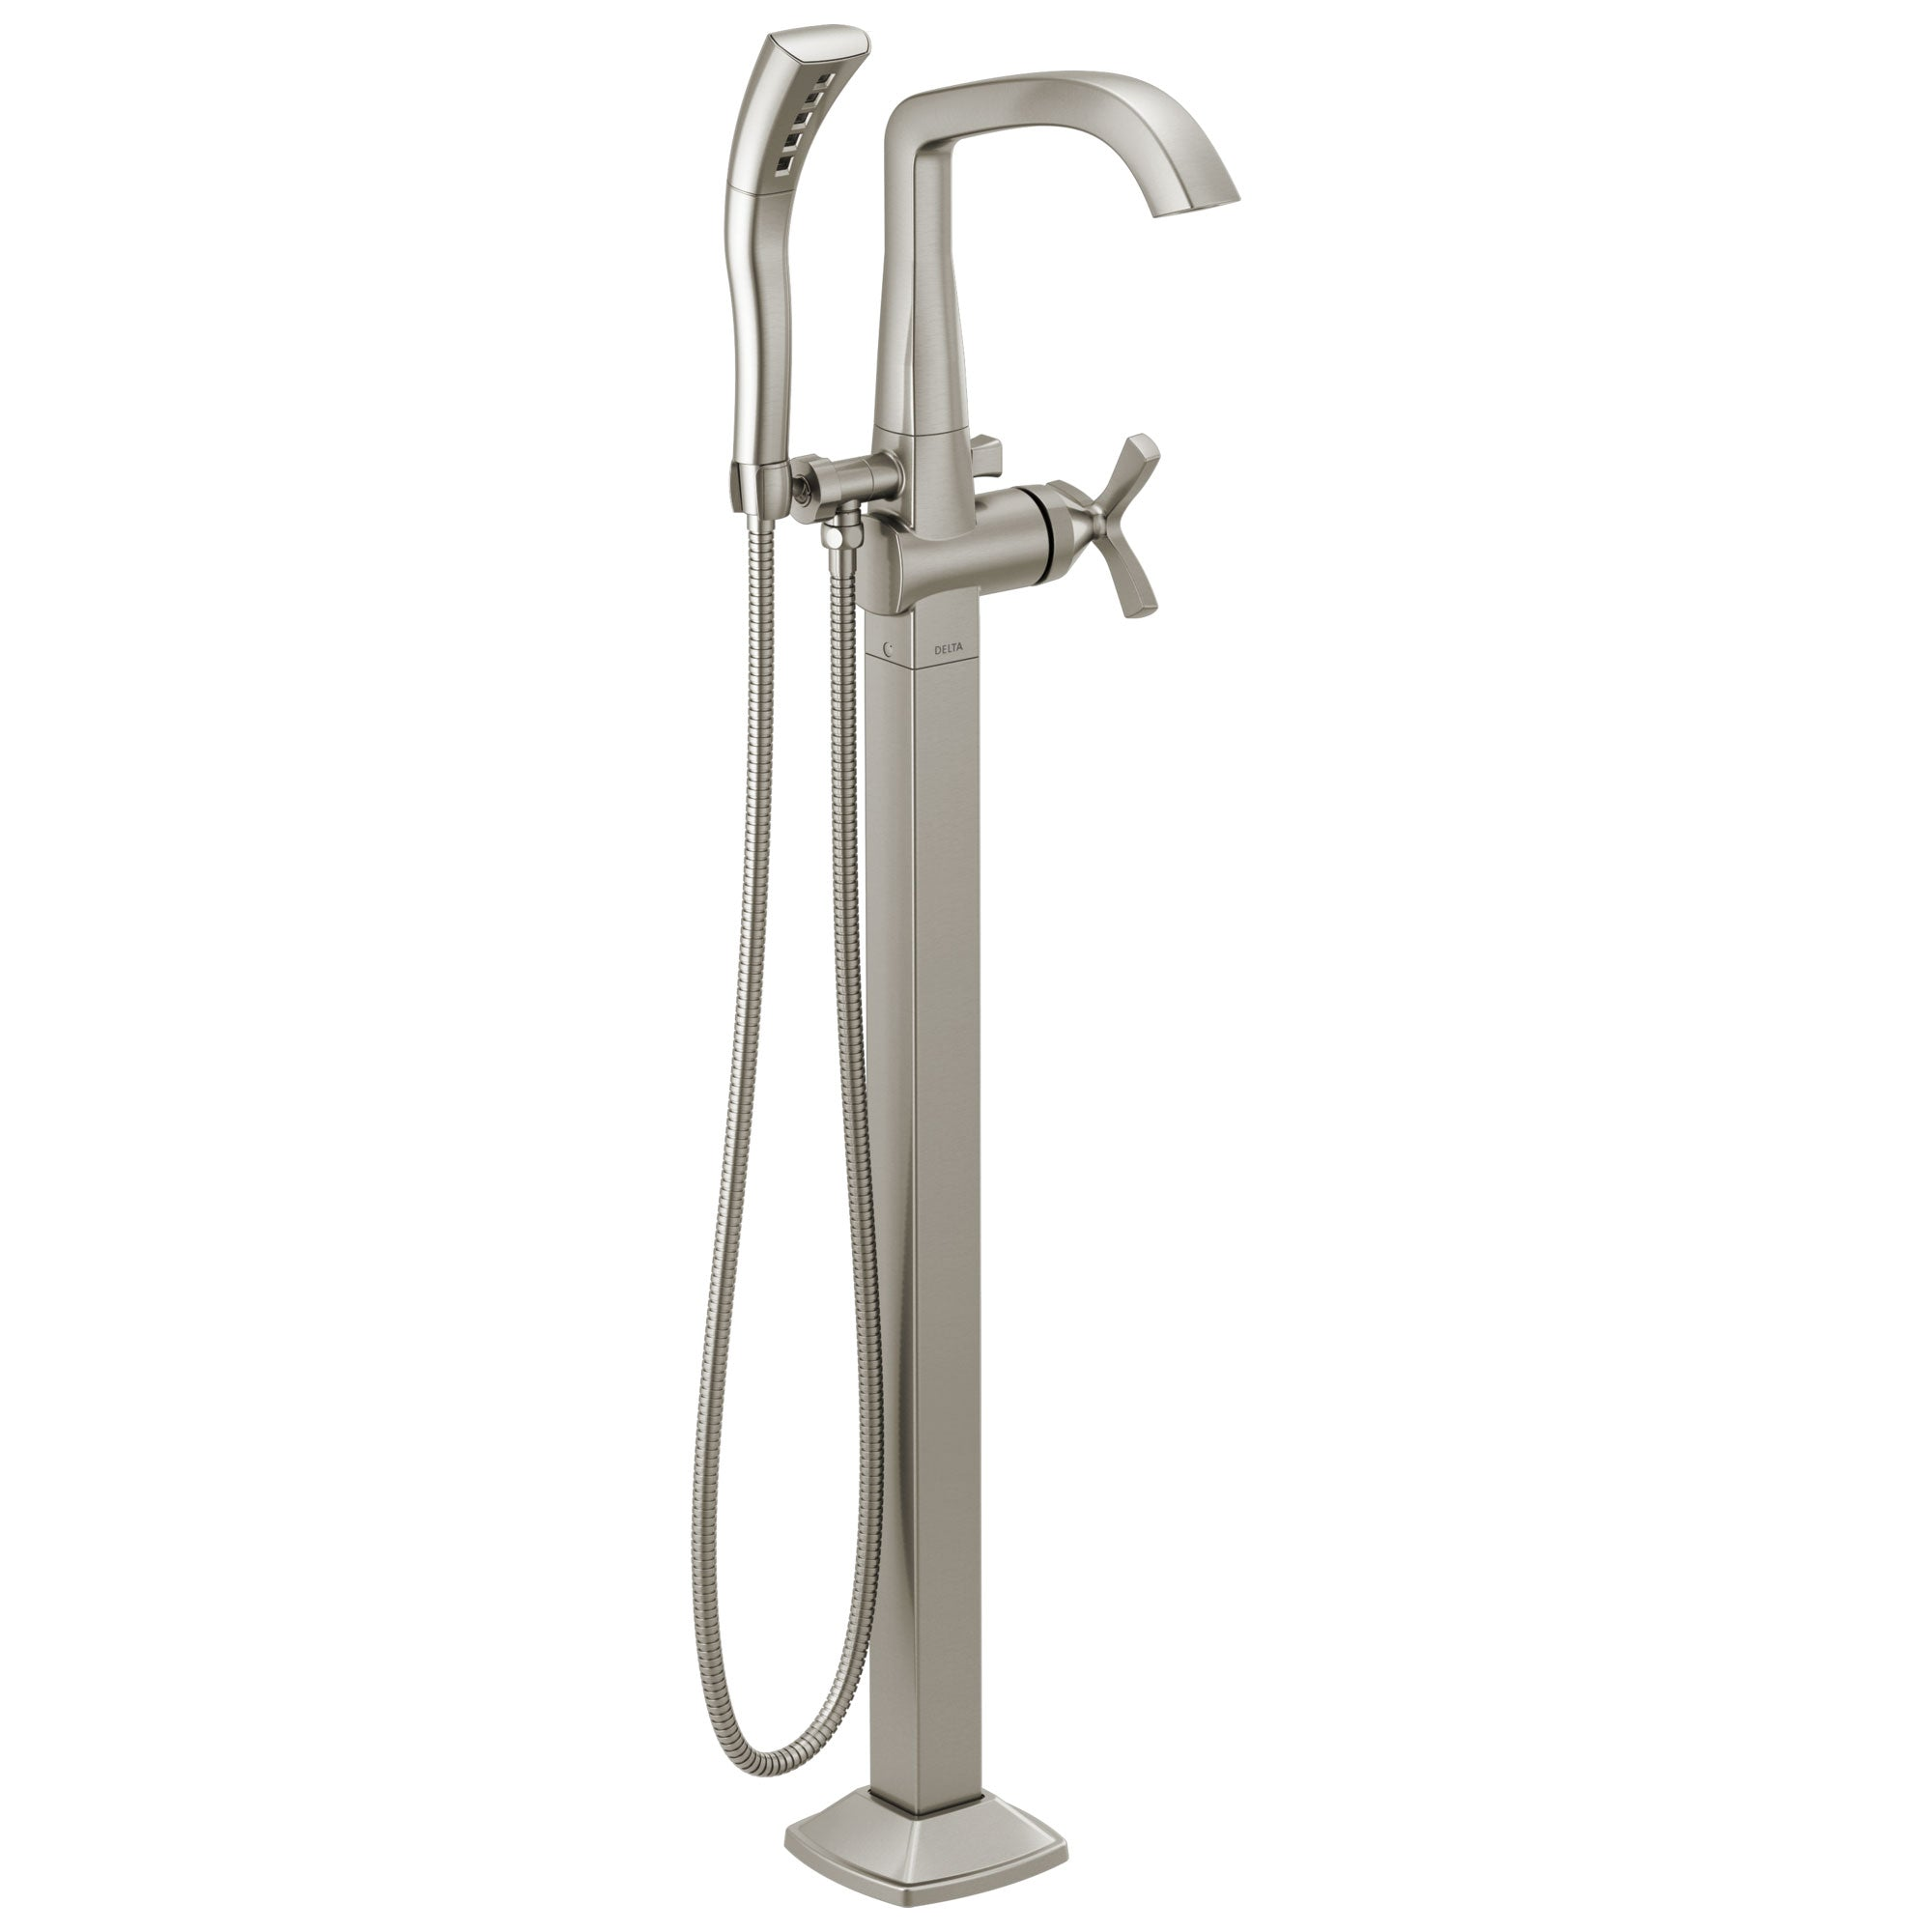 Delta Stryke Stainless Steel Finish Single Helo Cross Handle Floor Mount Tub Filler Faucet with Hand Sprayer Includes Rough-in Valve D3041V